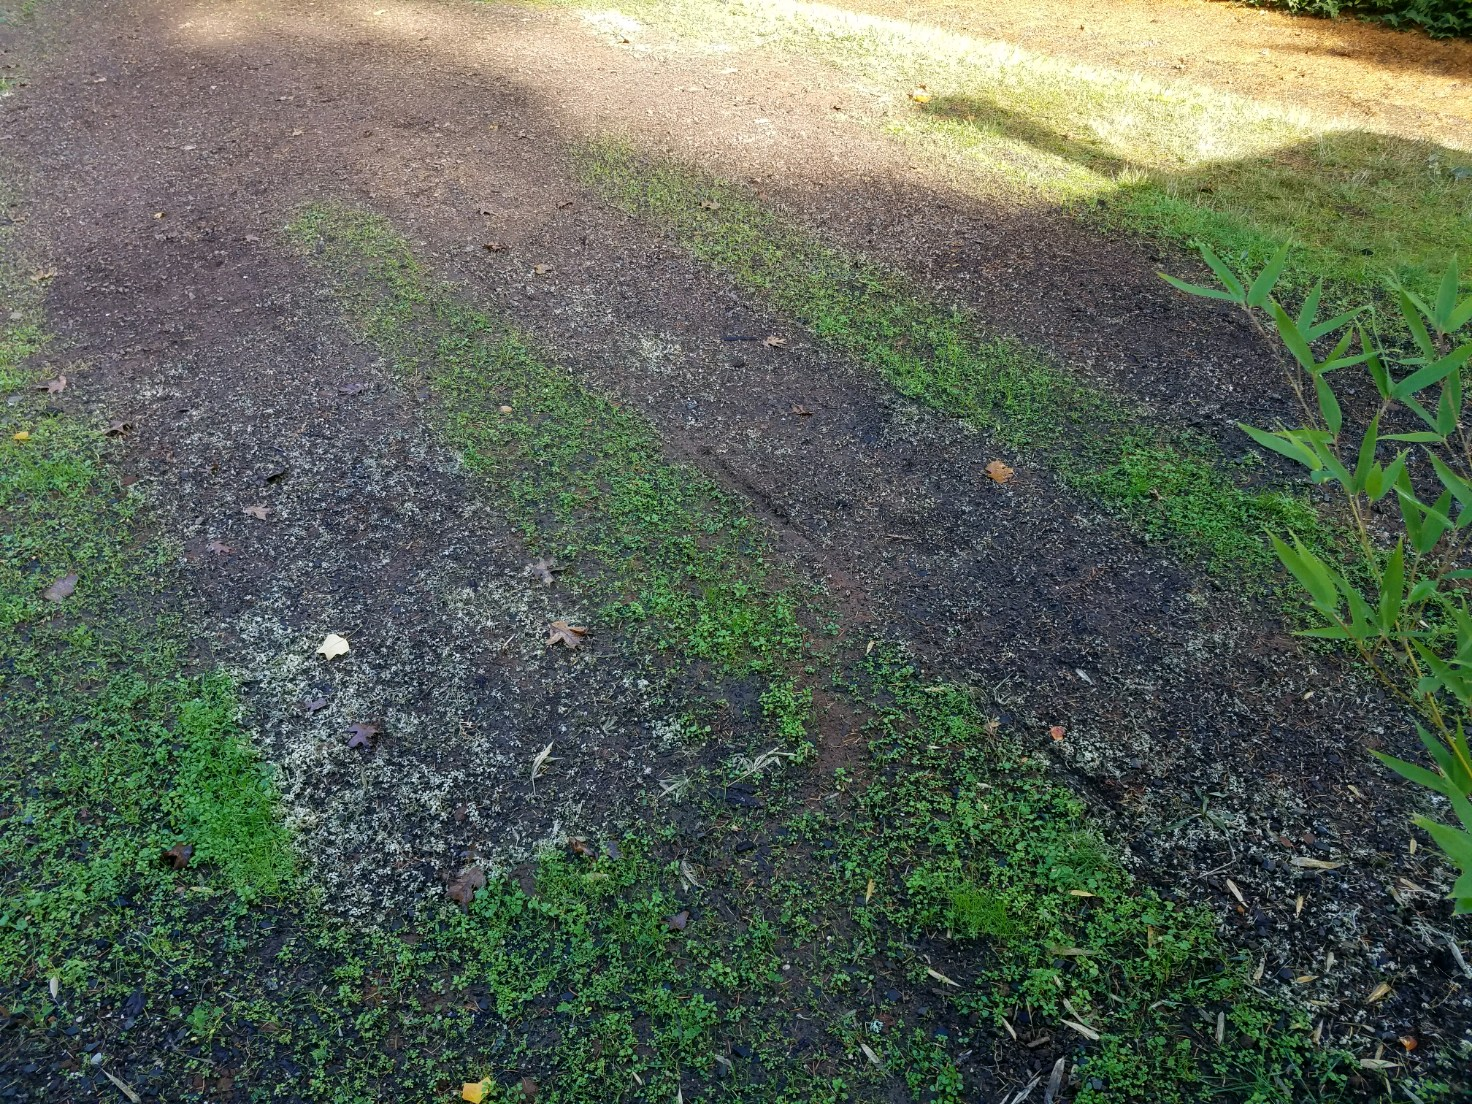 driveway 2 - several days after trtmt Field Cart.jpg